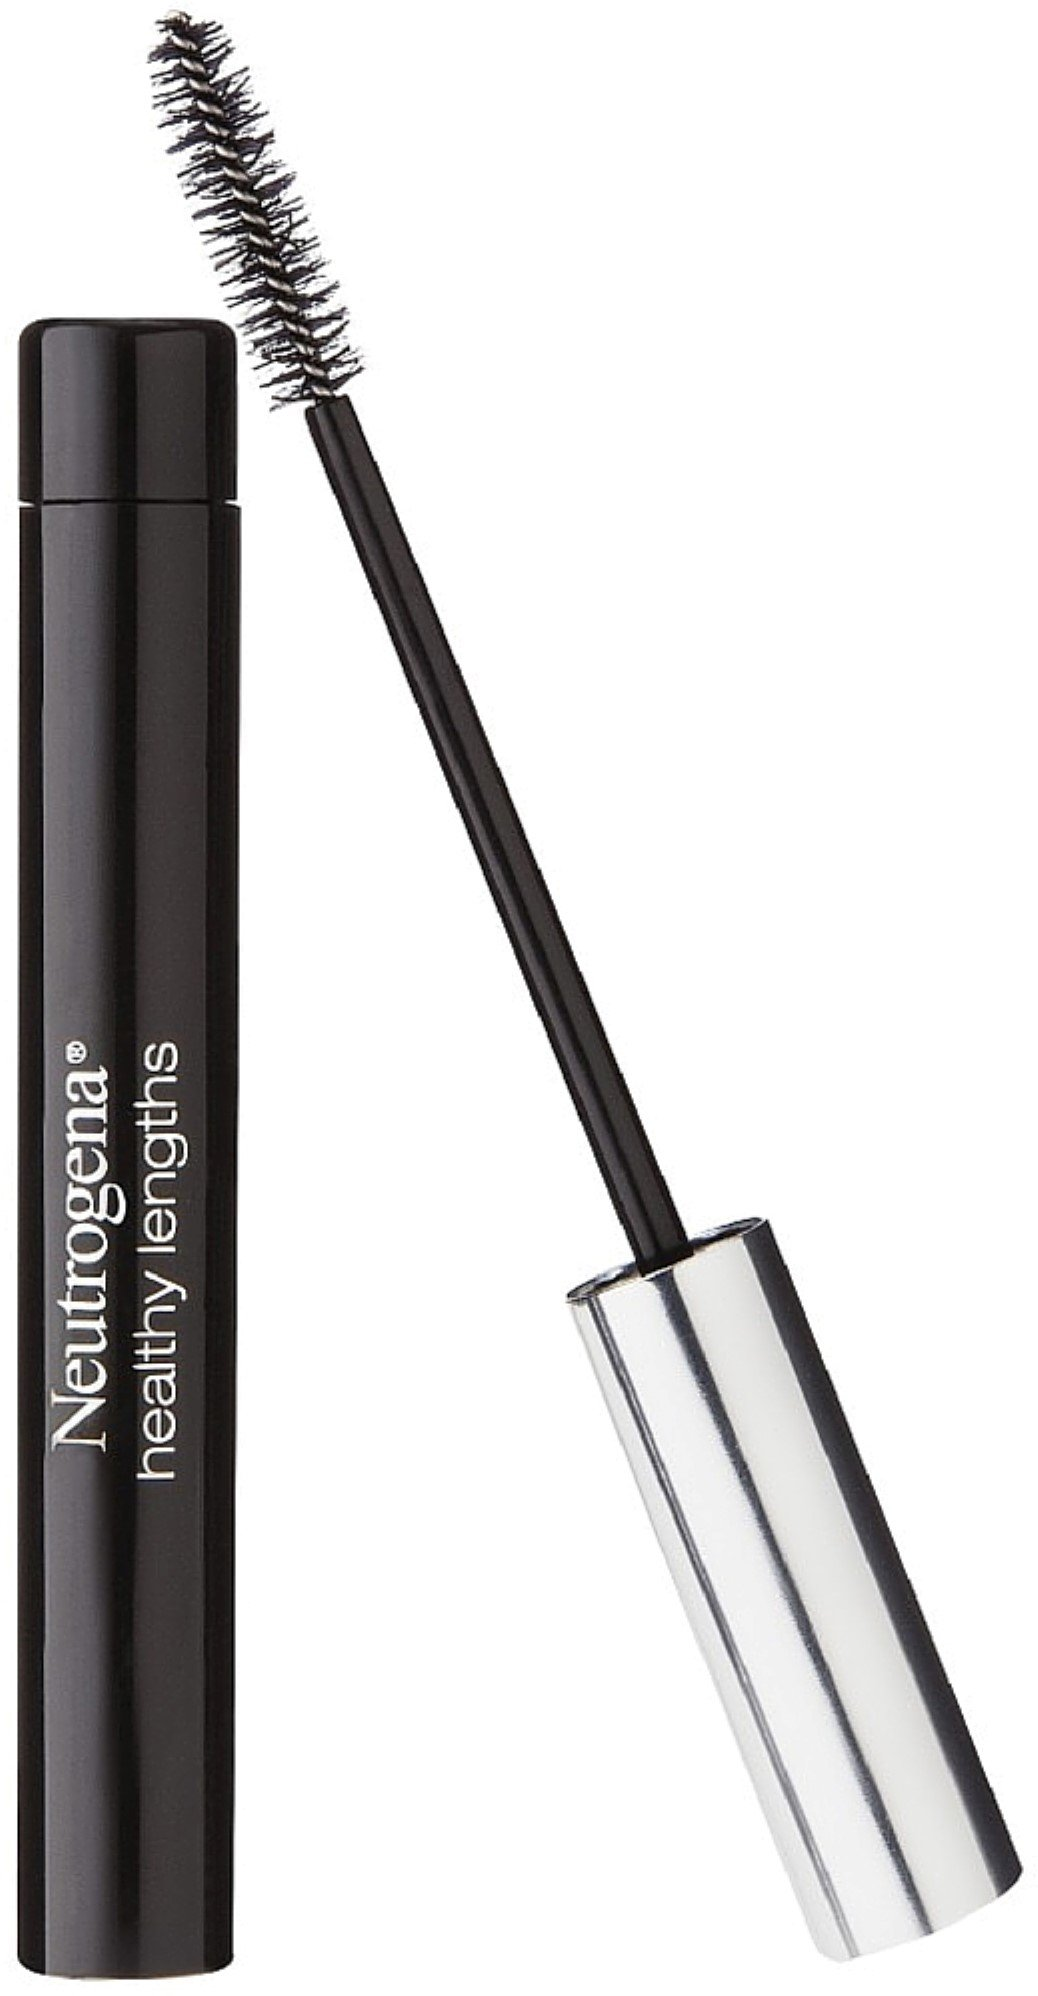 Neutrogena Healthy Lengths Mascara, Carbon Black [01] 0.21 oz (12 Pack)